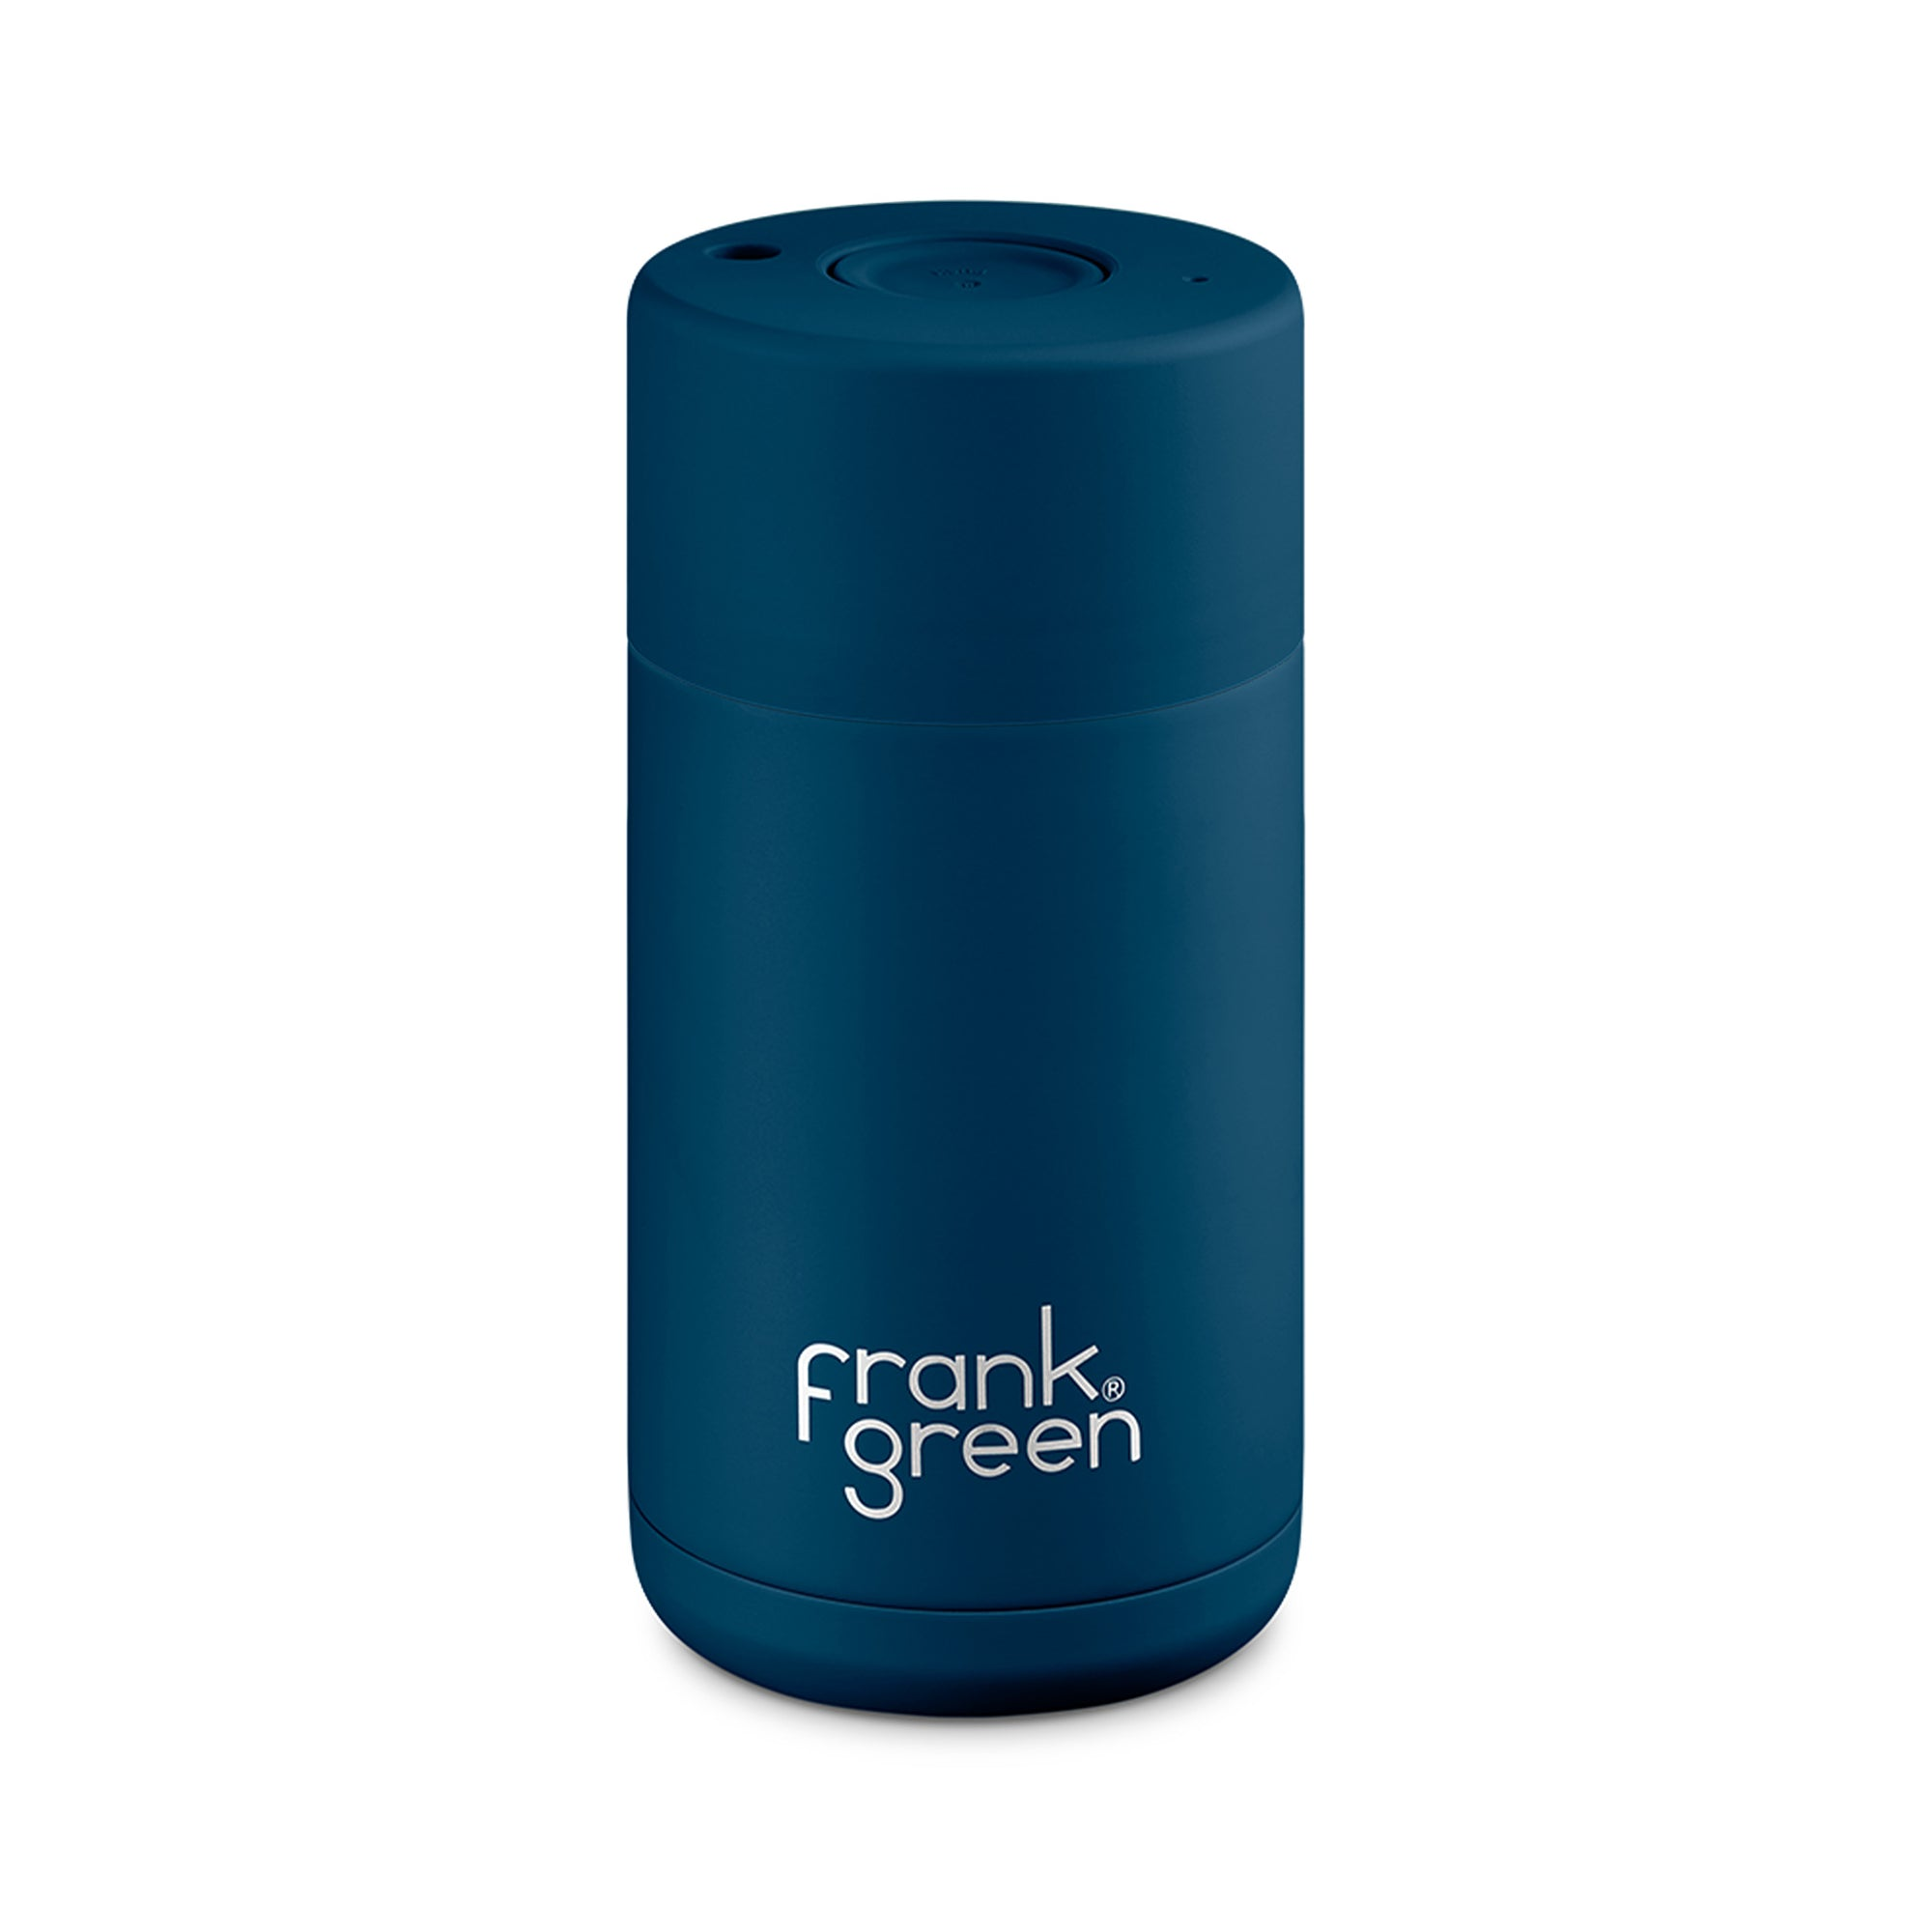 Frank Green Stainless Steel SmartCup Navy Blue - Espresso Gear